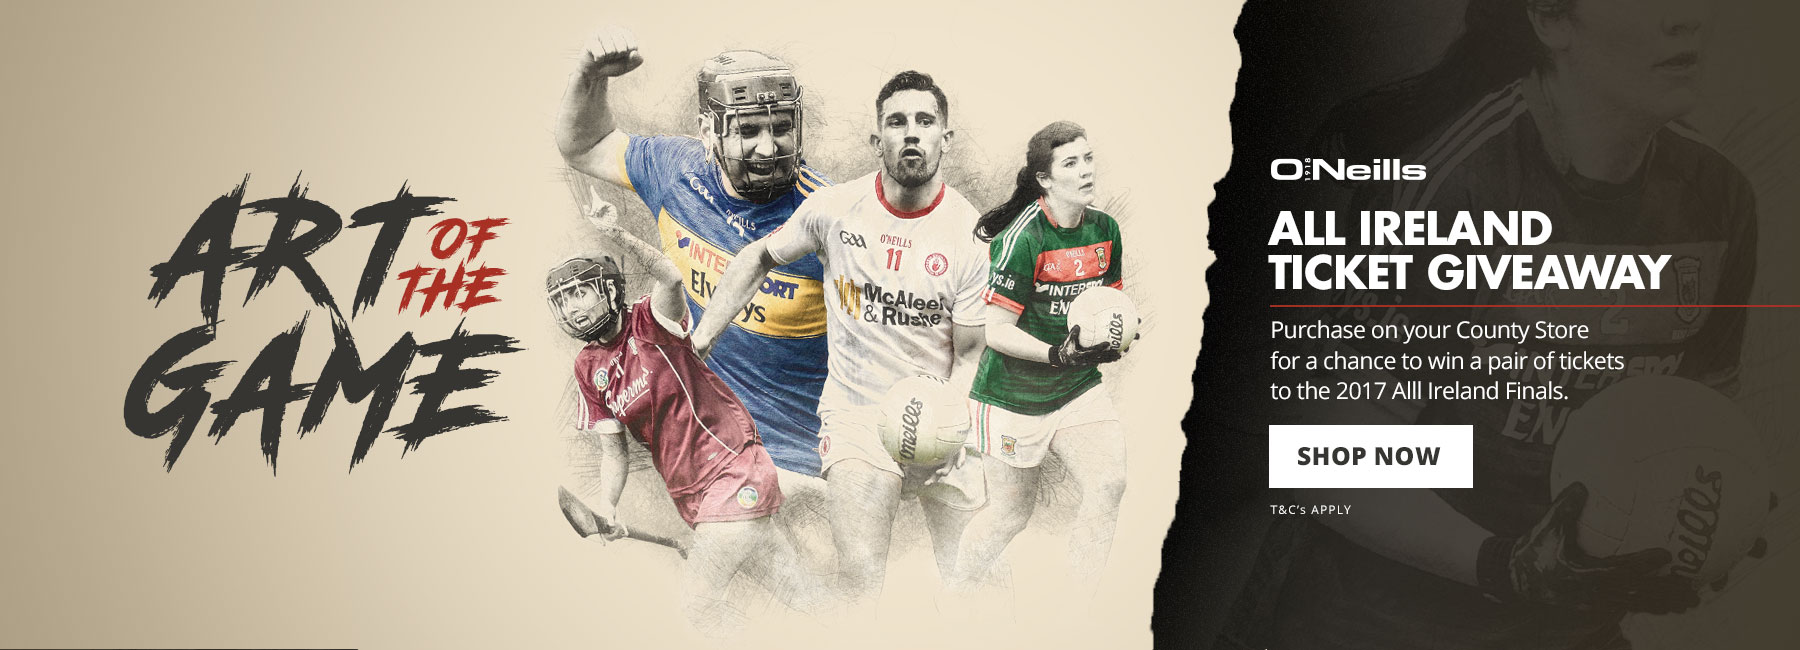 O'Neills All Ireland Ticket Giveaway